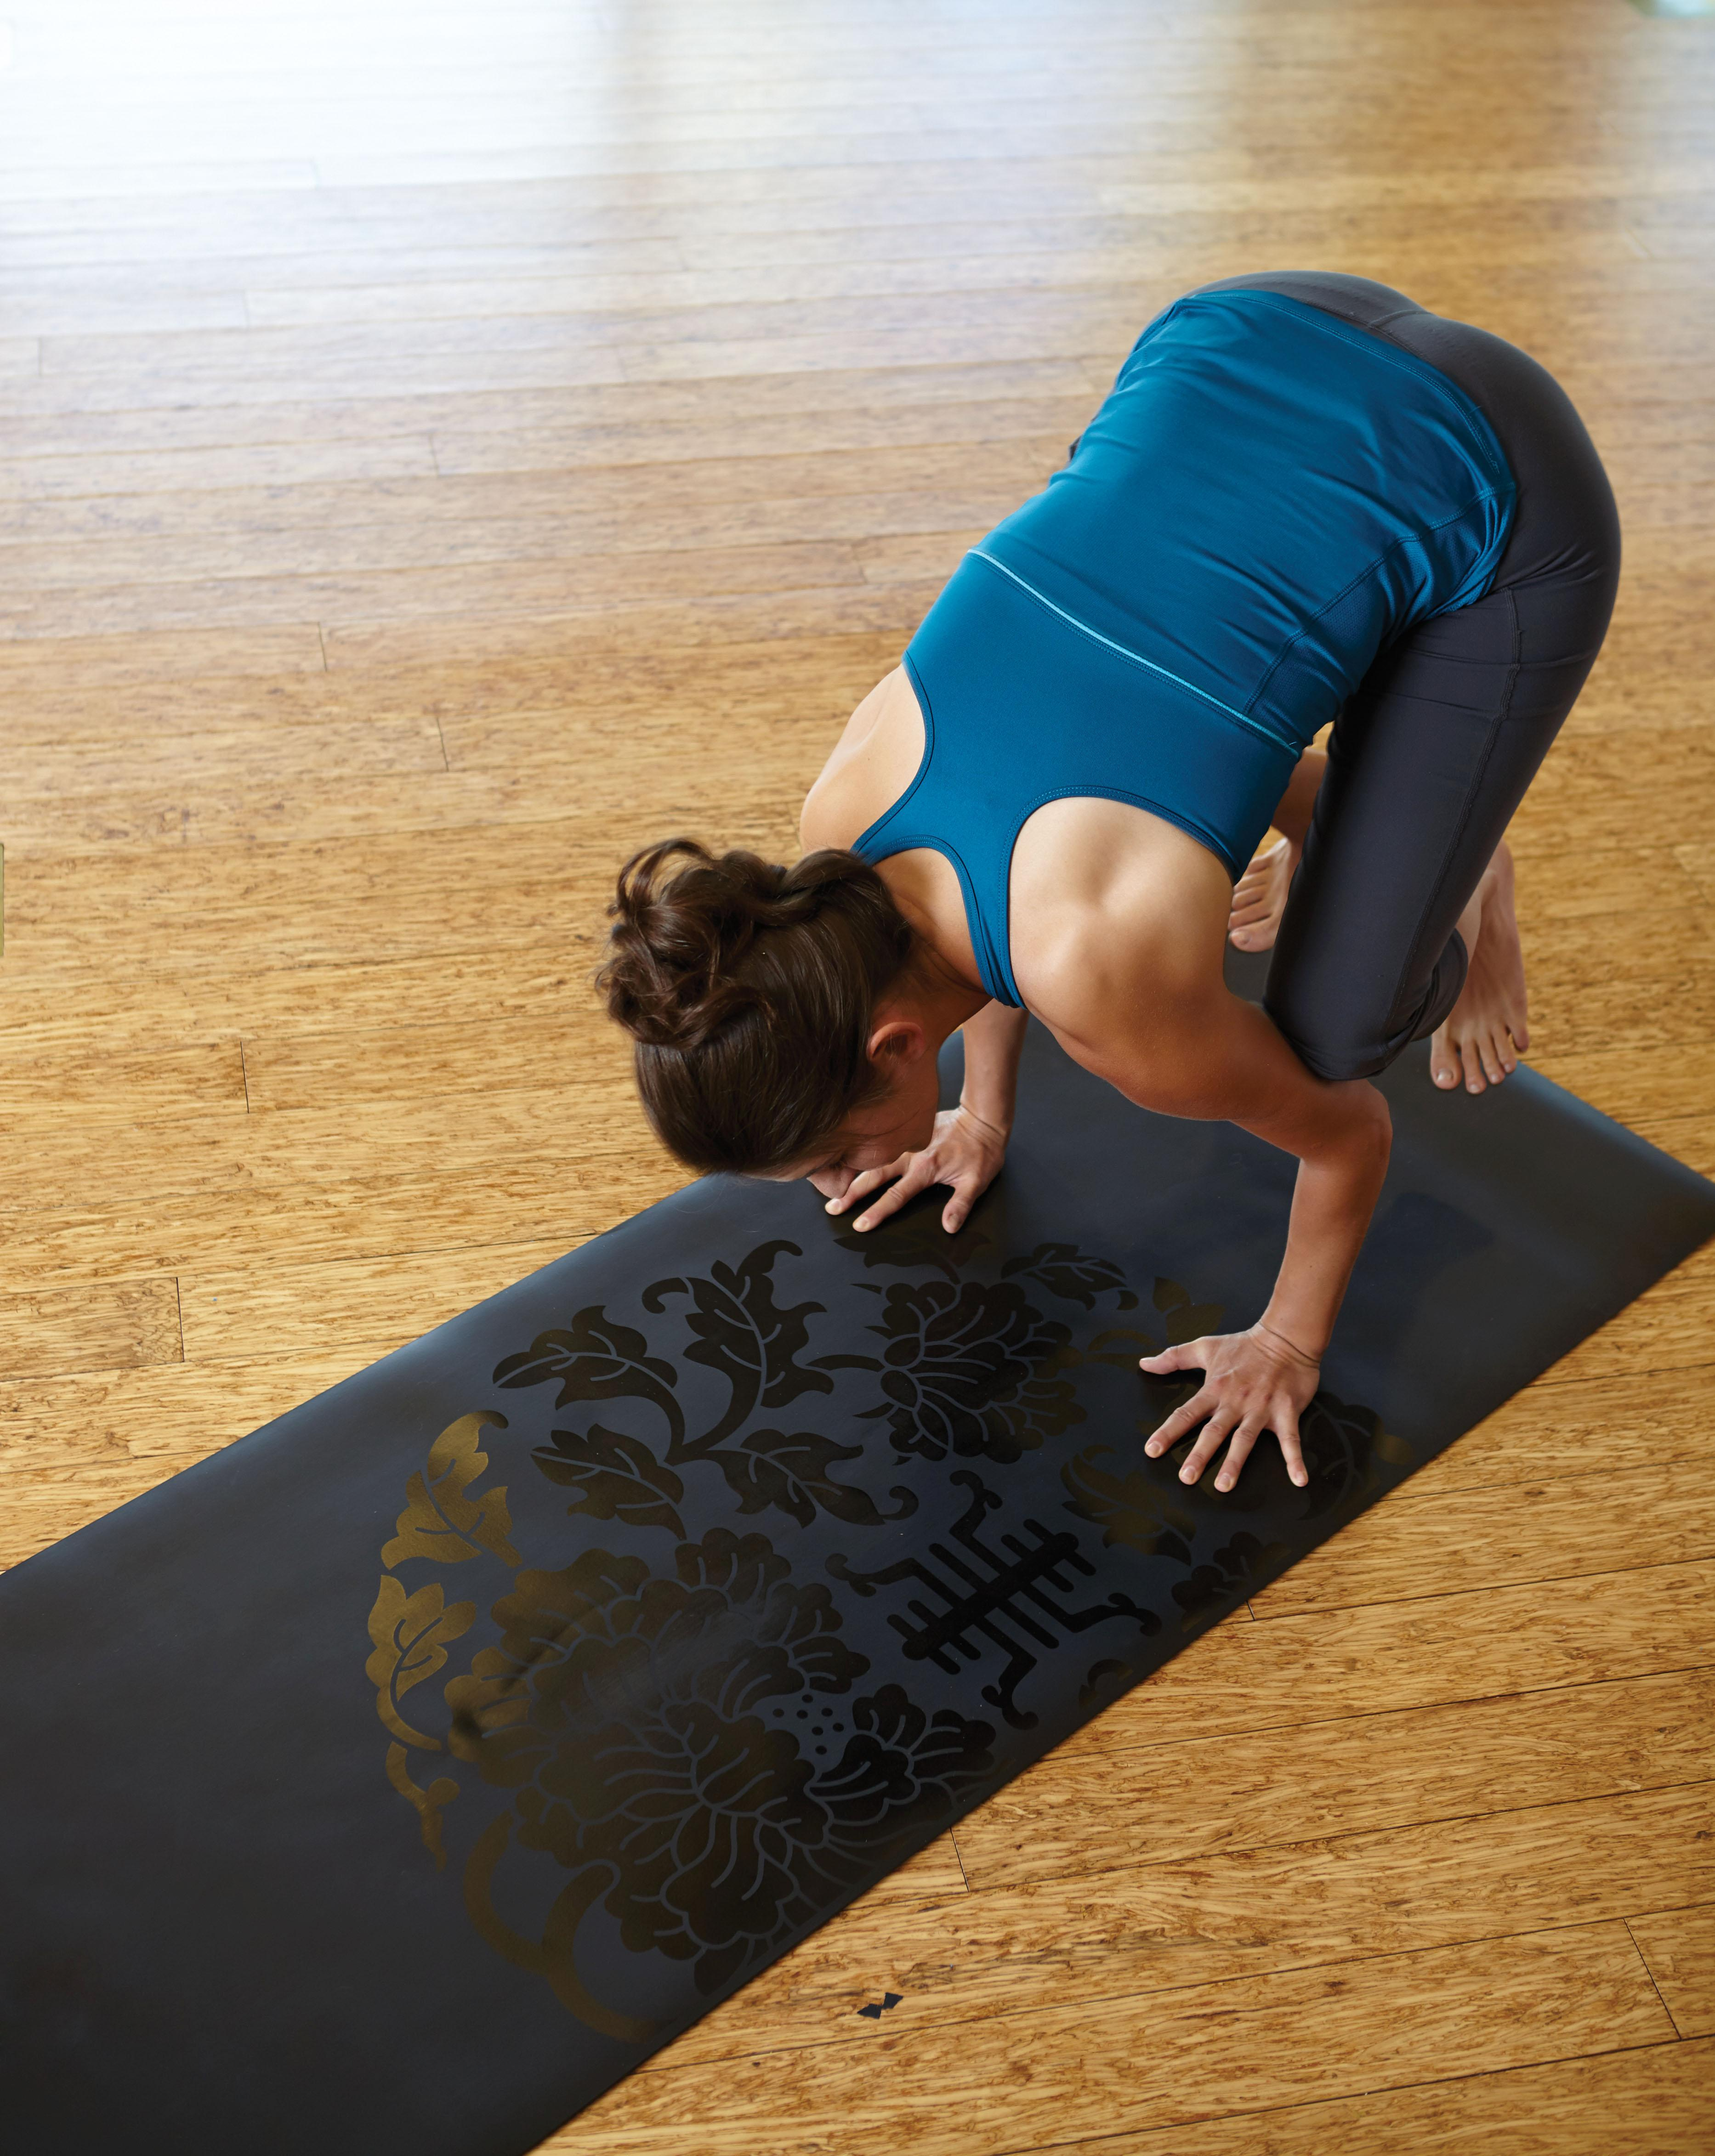 Dry Grip Yoga Mat Mats Amazon Canada